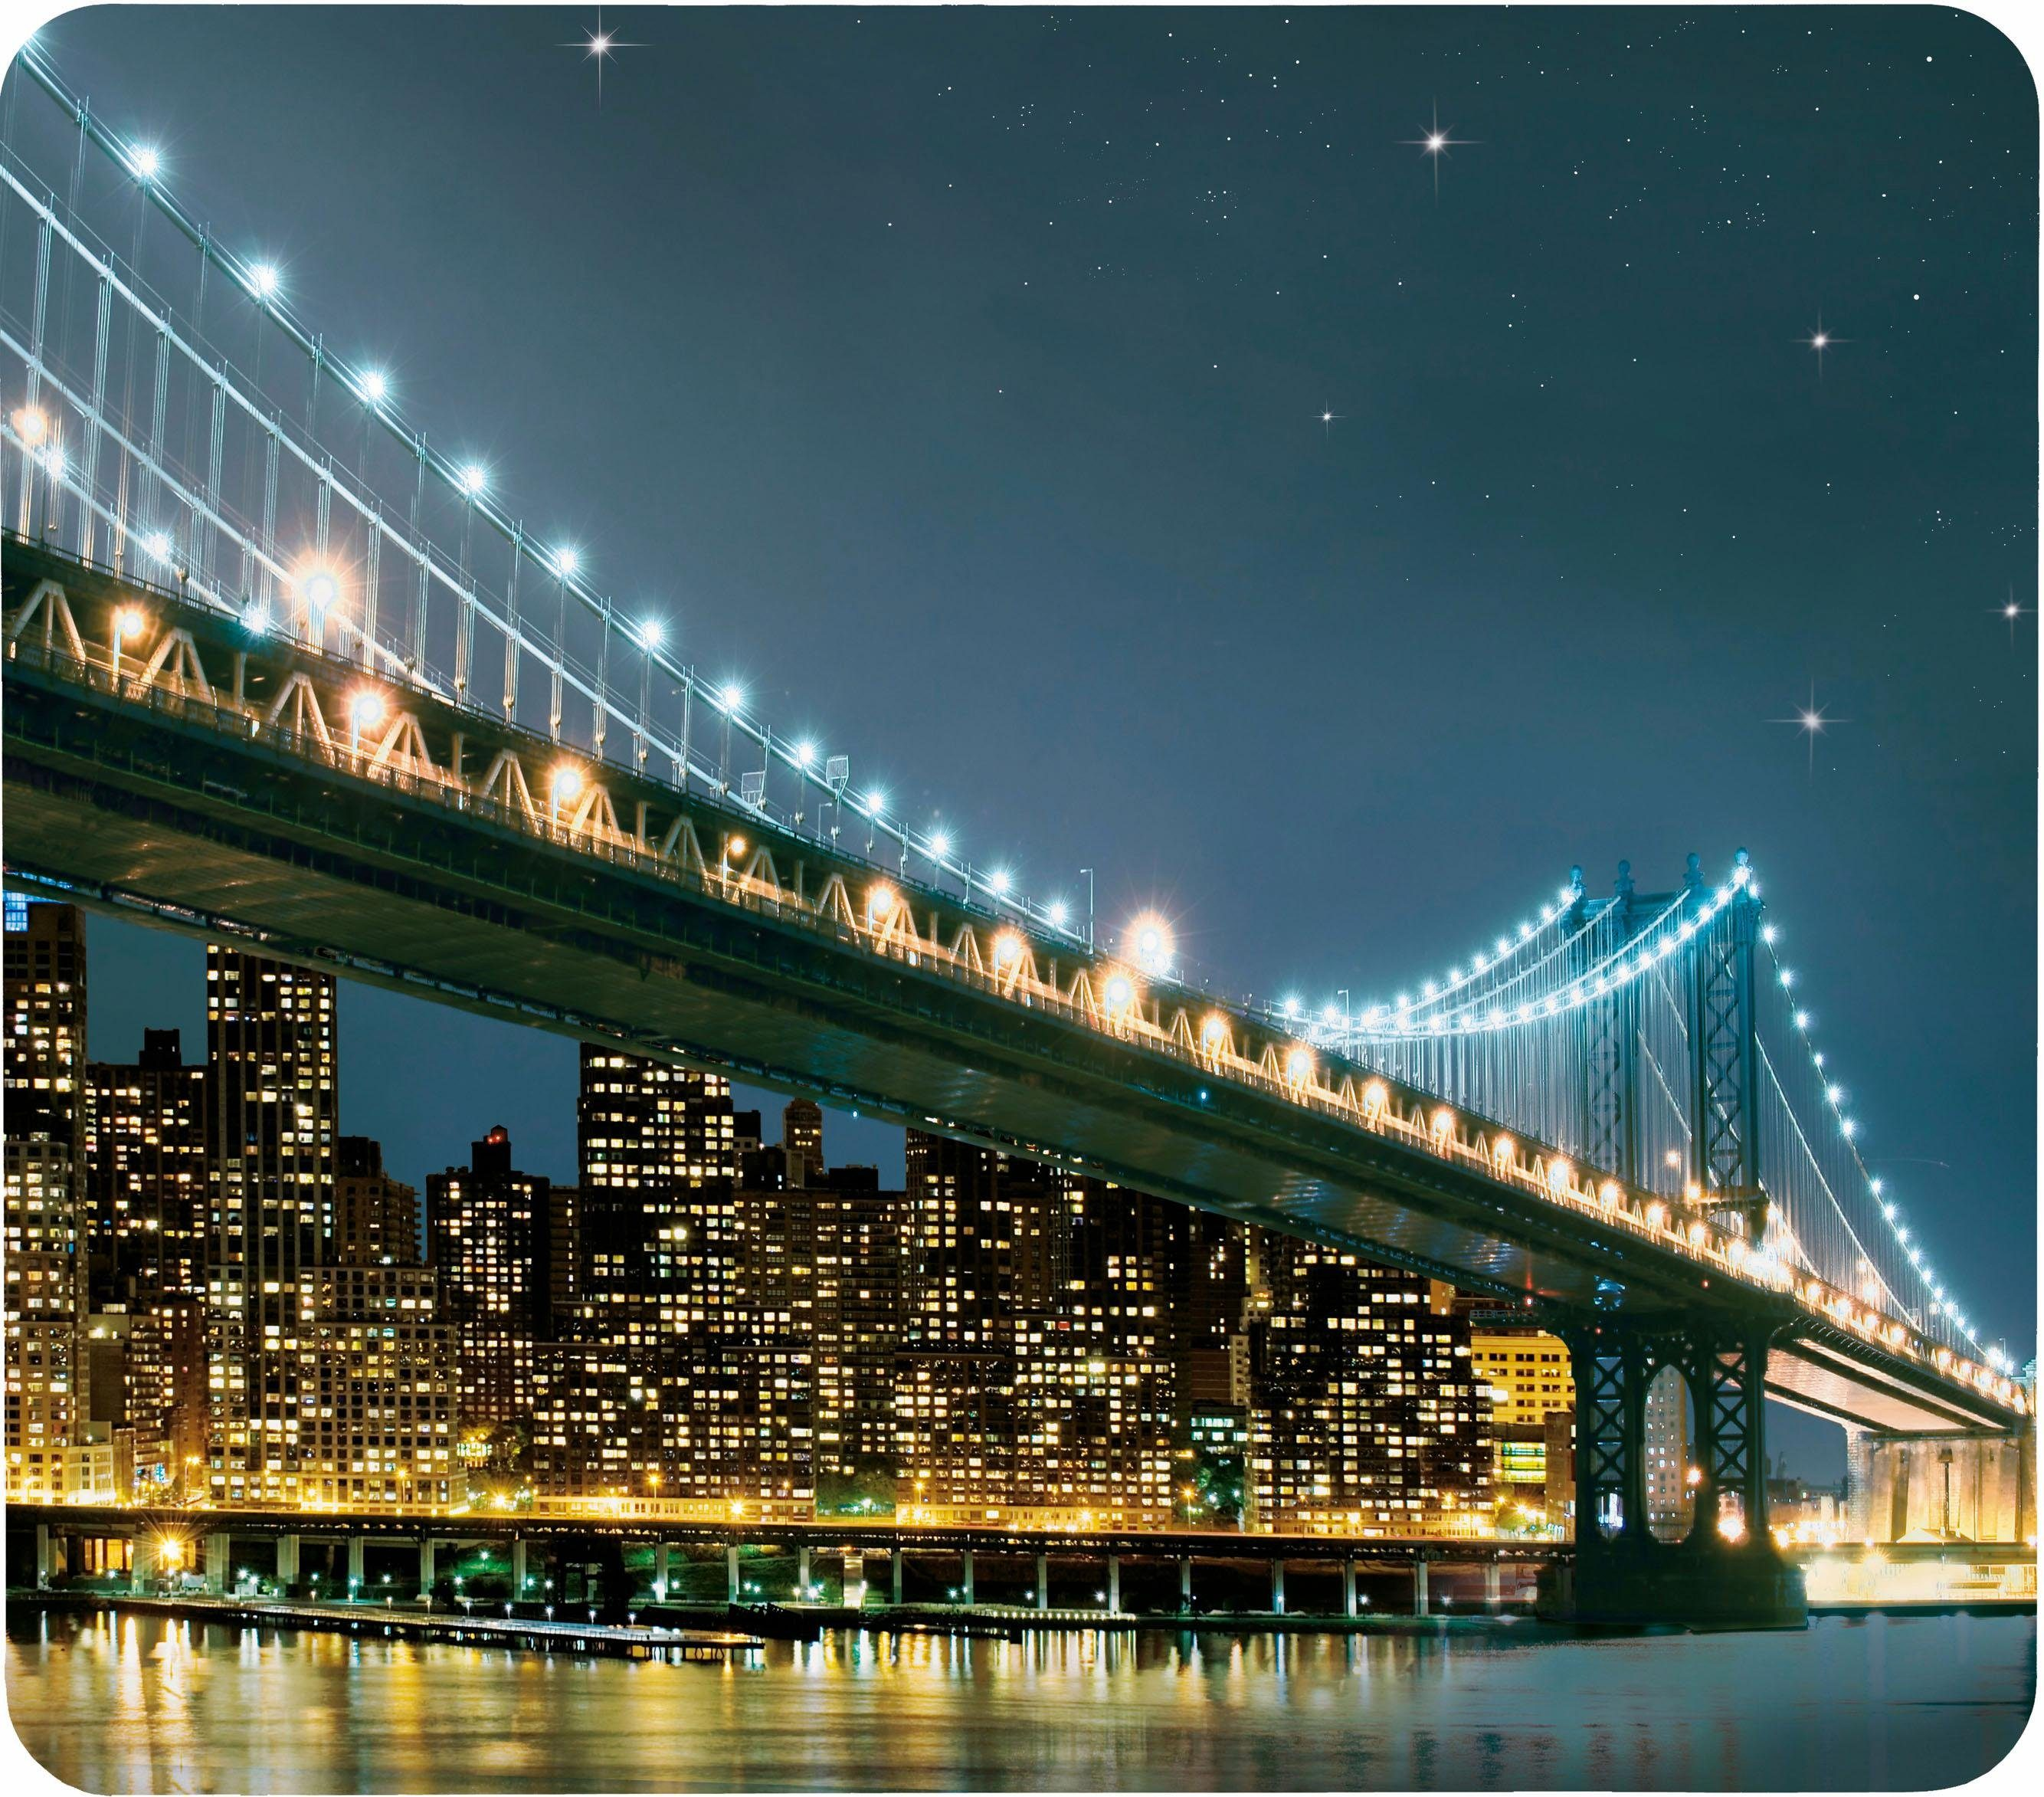 Wenko XL-Abdeckplatte, 50 x 56 cm, »Brooklyn Bridge«